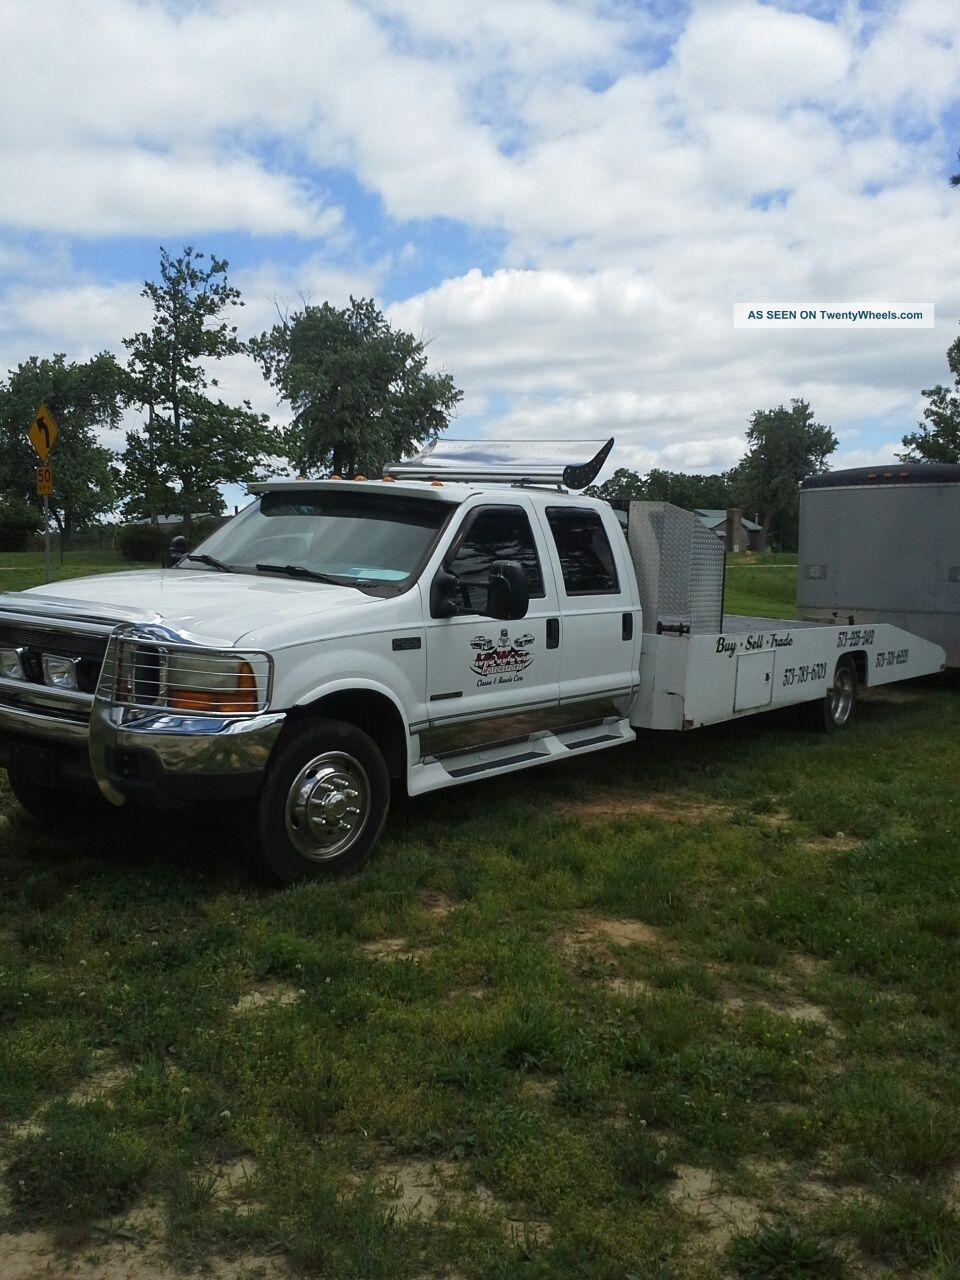 2000 2000 Ford F550 7 3 Diesel Wedge Bed Car Hauler 2000 Ford F550